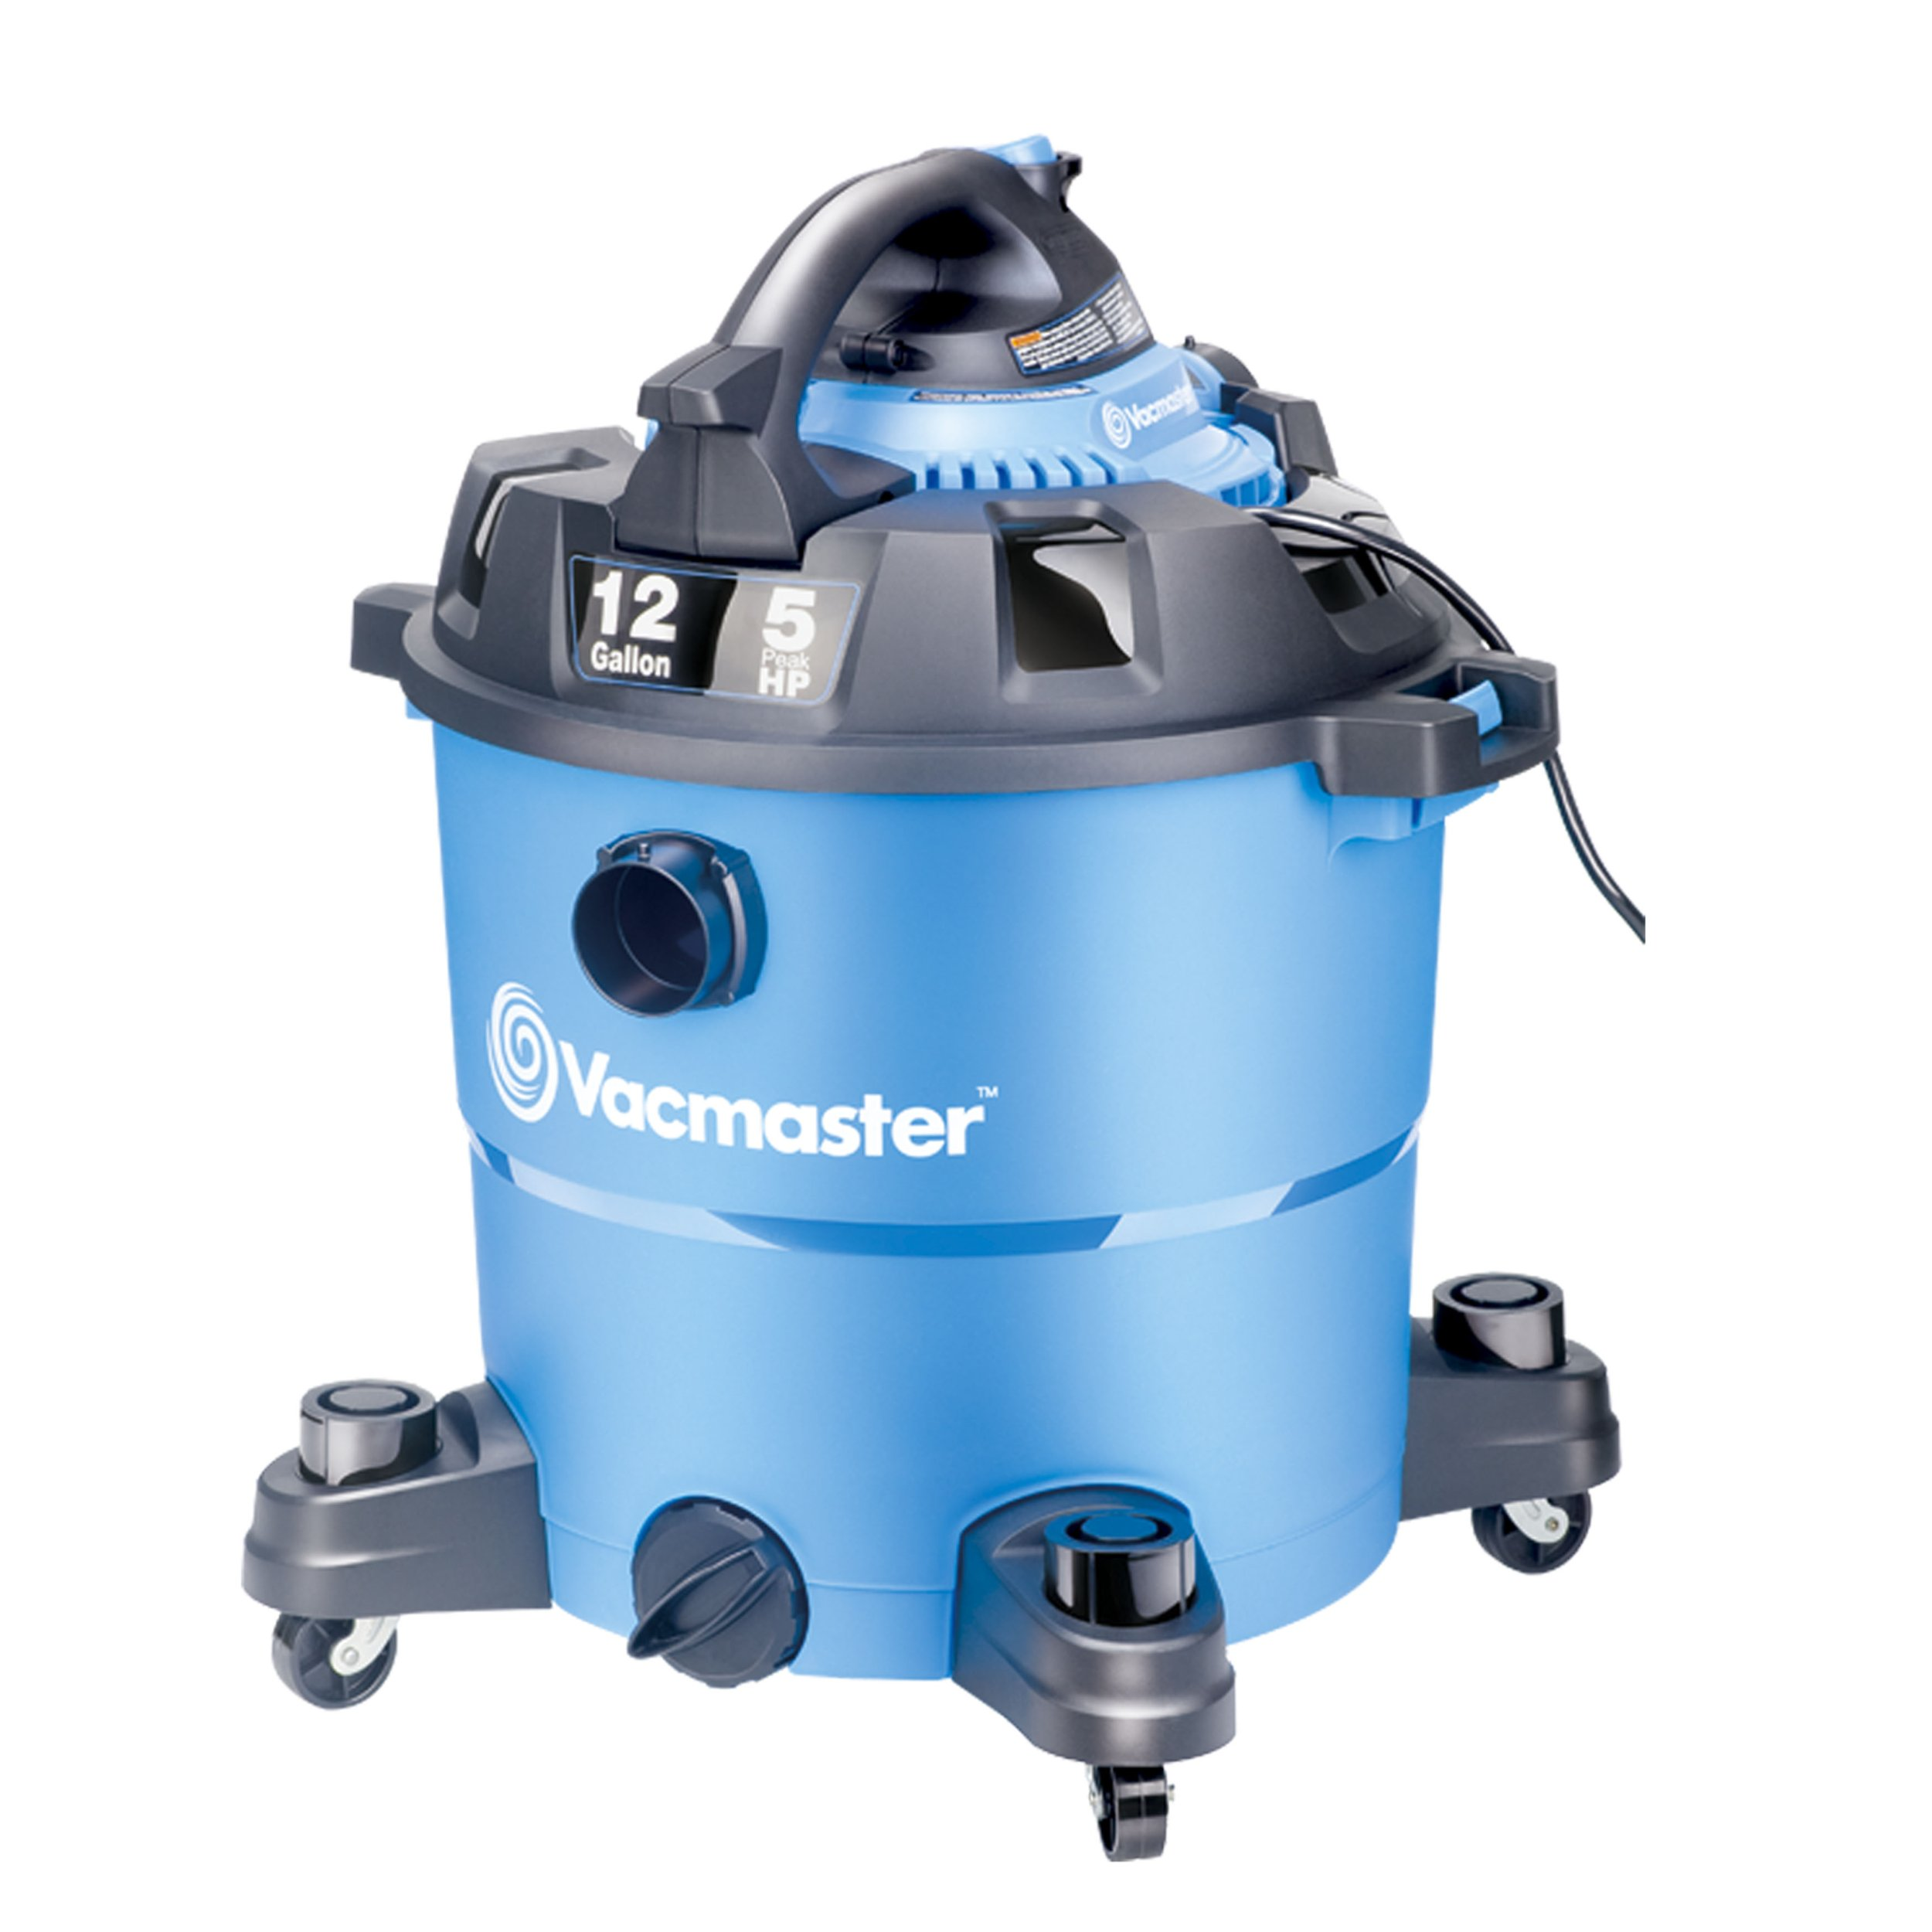 Vacmaster, VBV1210, 12 Gallon 5 Peak HP Wet/Dry Shop Vacuum with Detachable Blower by Vacmaster